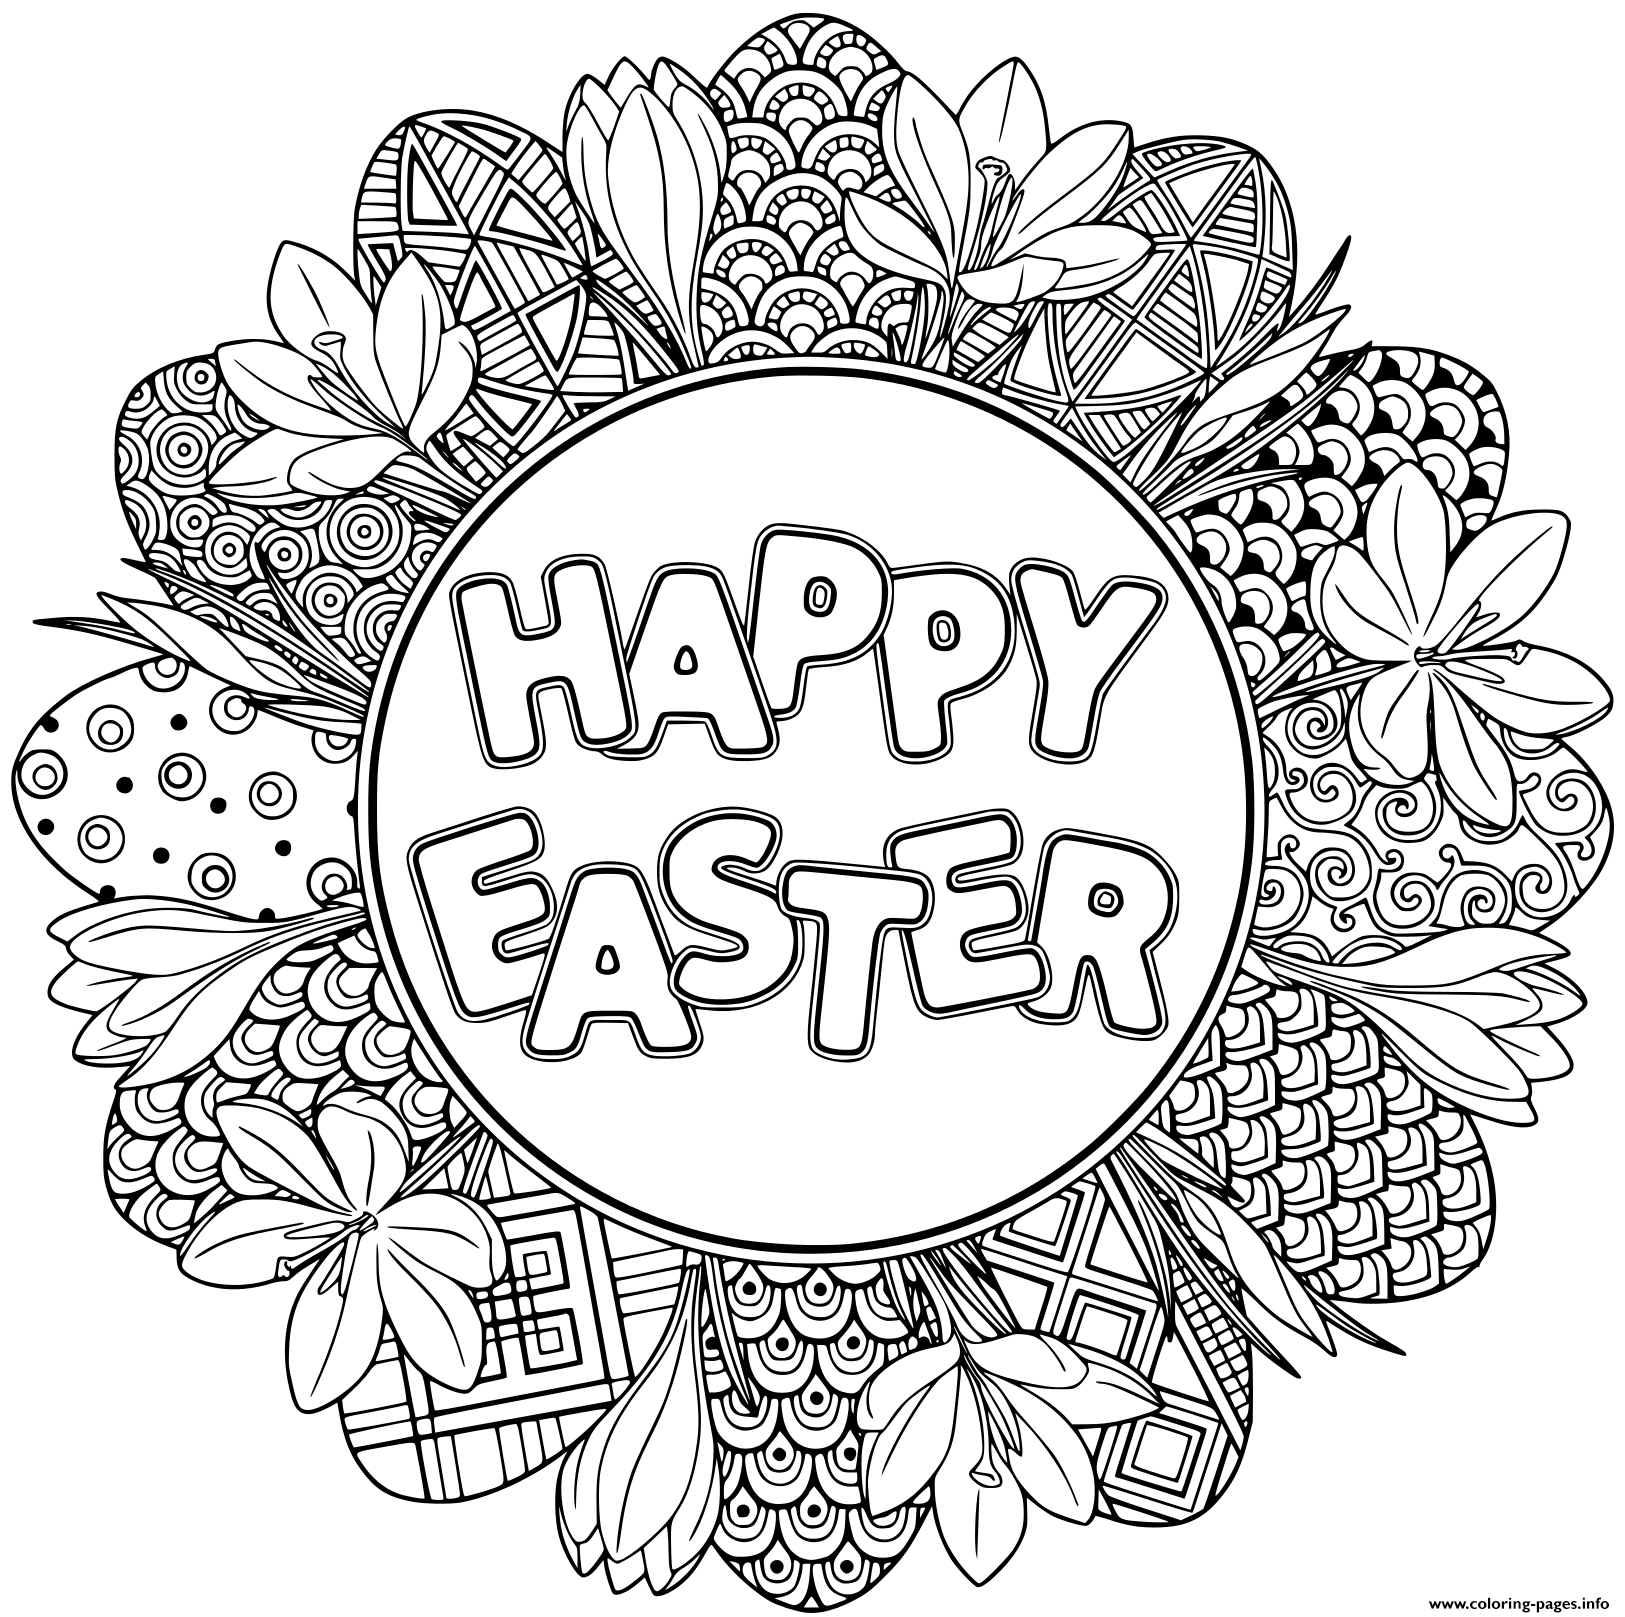 Print Happy Easter Easter Mandala Coloring Pages Easter Coloring Sheets Easter Coloring Book Easter Coloring Pages